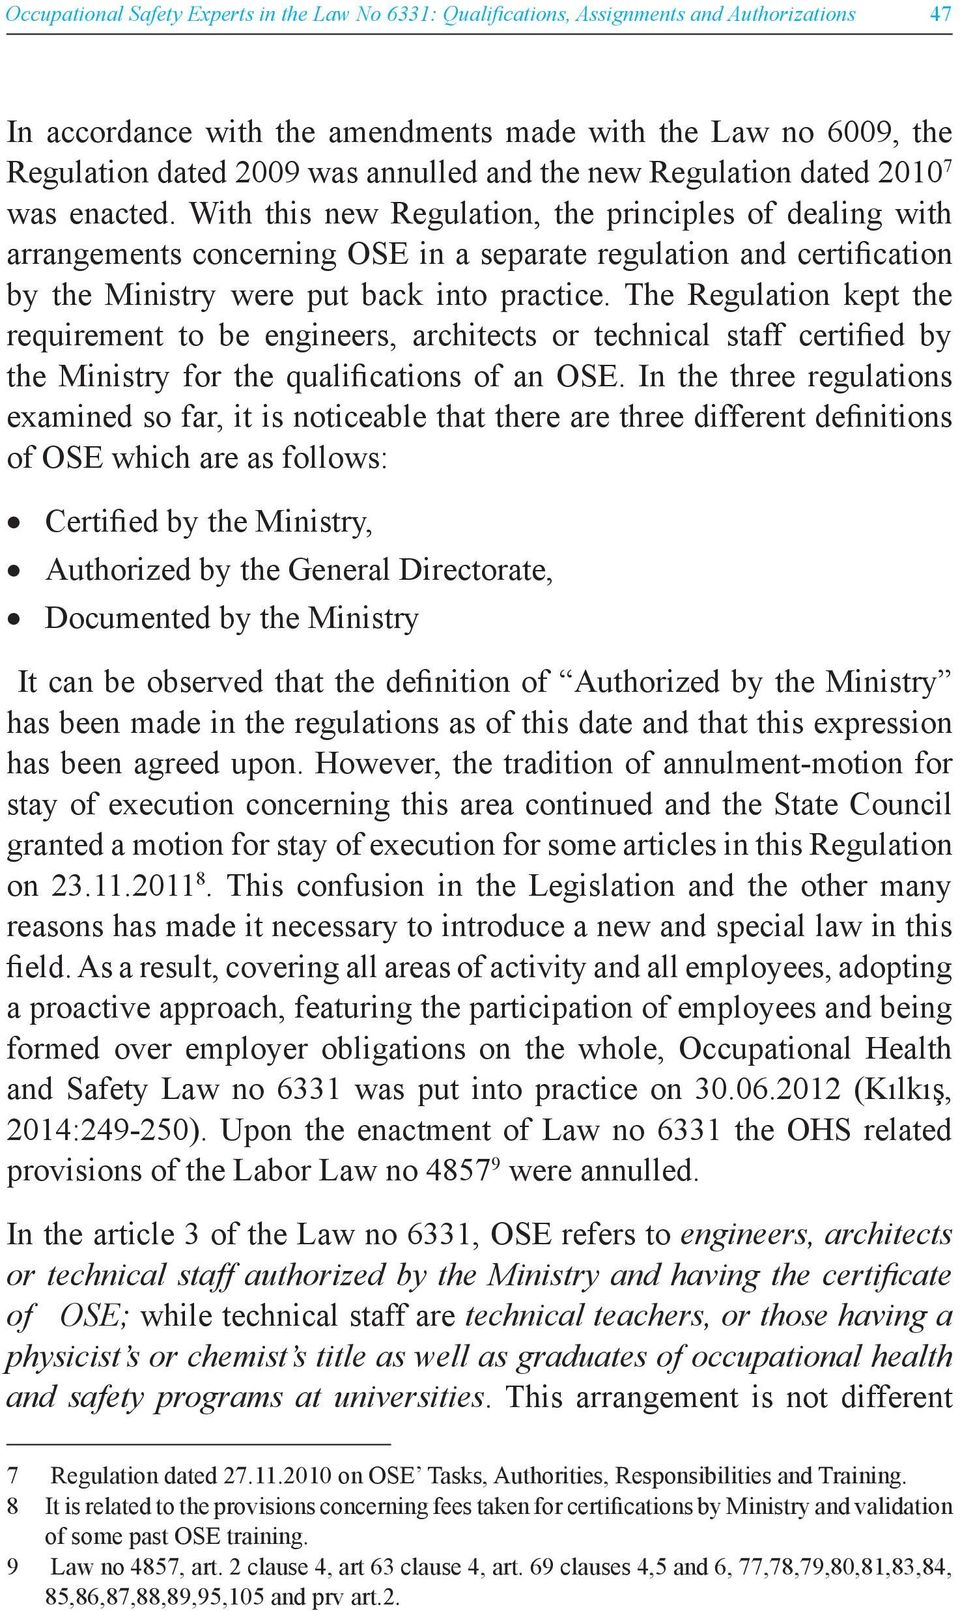 With this new Regulation, the principles of dealing with arrangements concerning OSE in a separate regulation and certification by the Ministry were put back into practice.